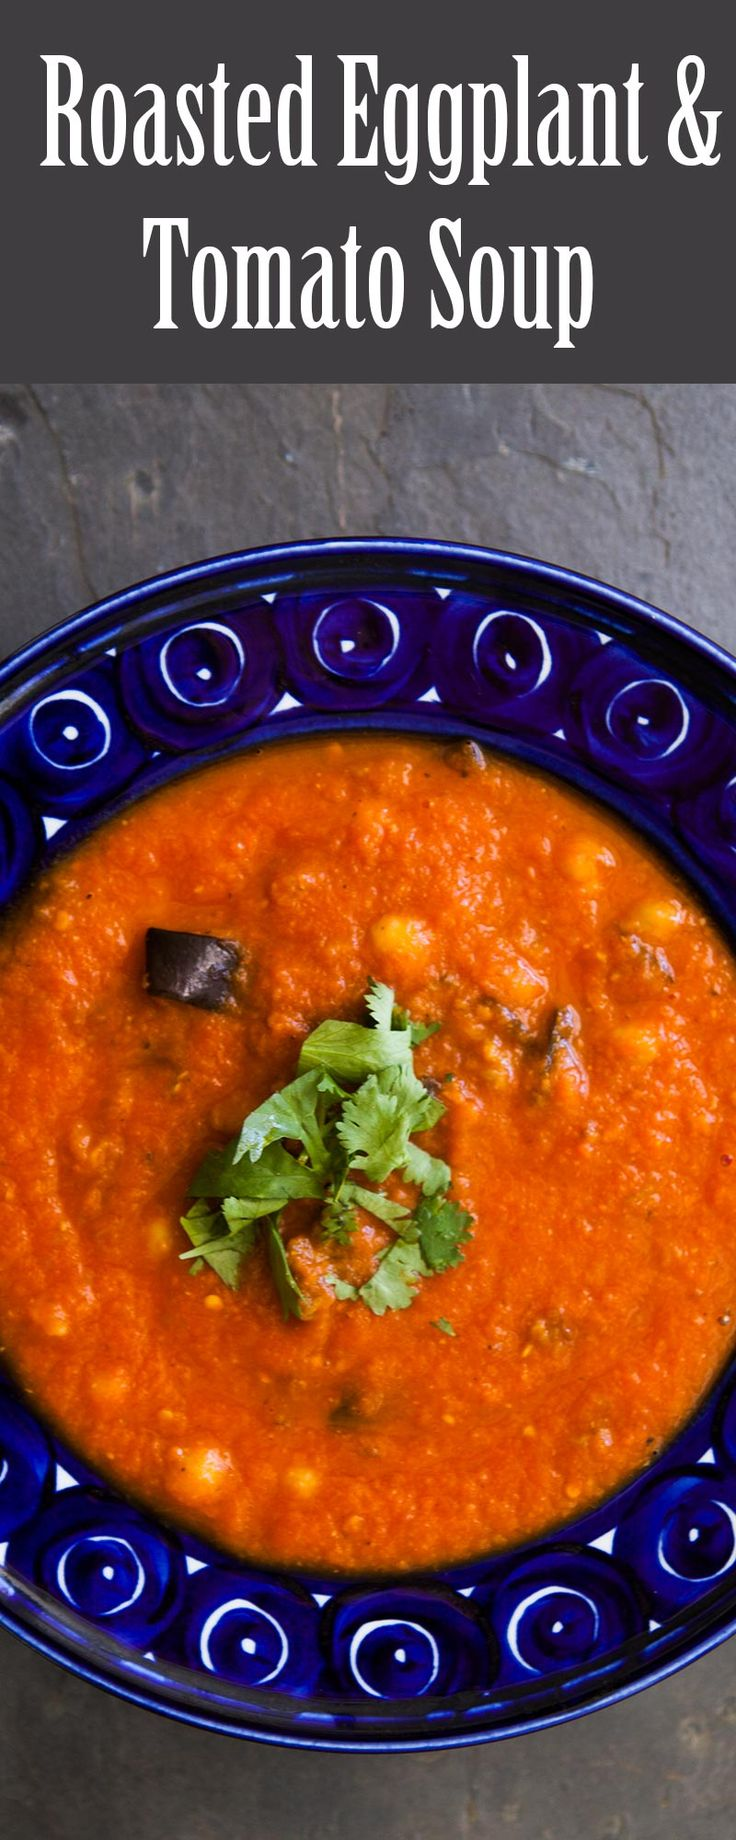 Roasted eggplant and tomato soup! made with oven roasted tomatoes, carrots, garlic, chickpeas, and eggplant. #vegan